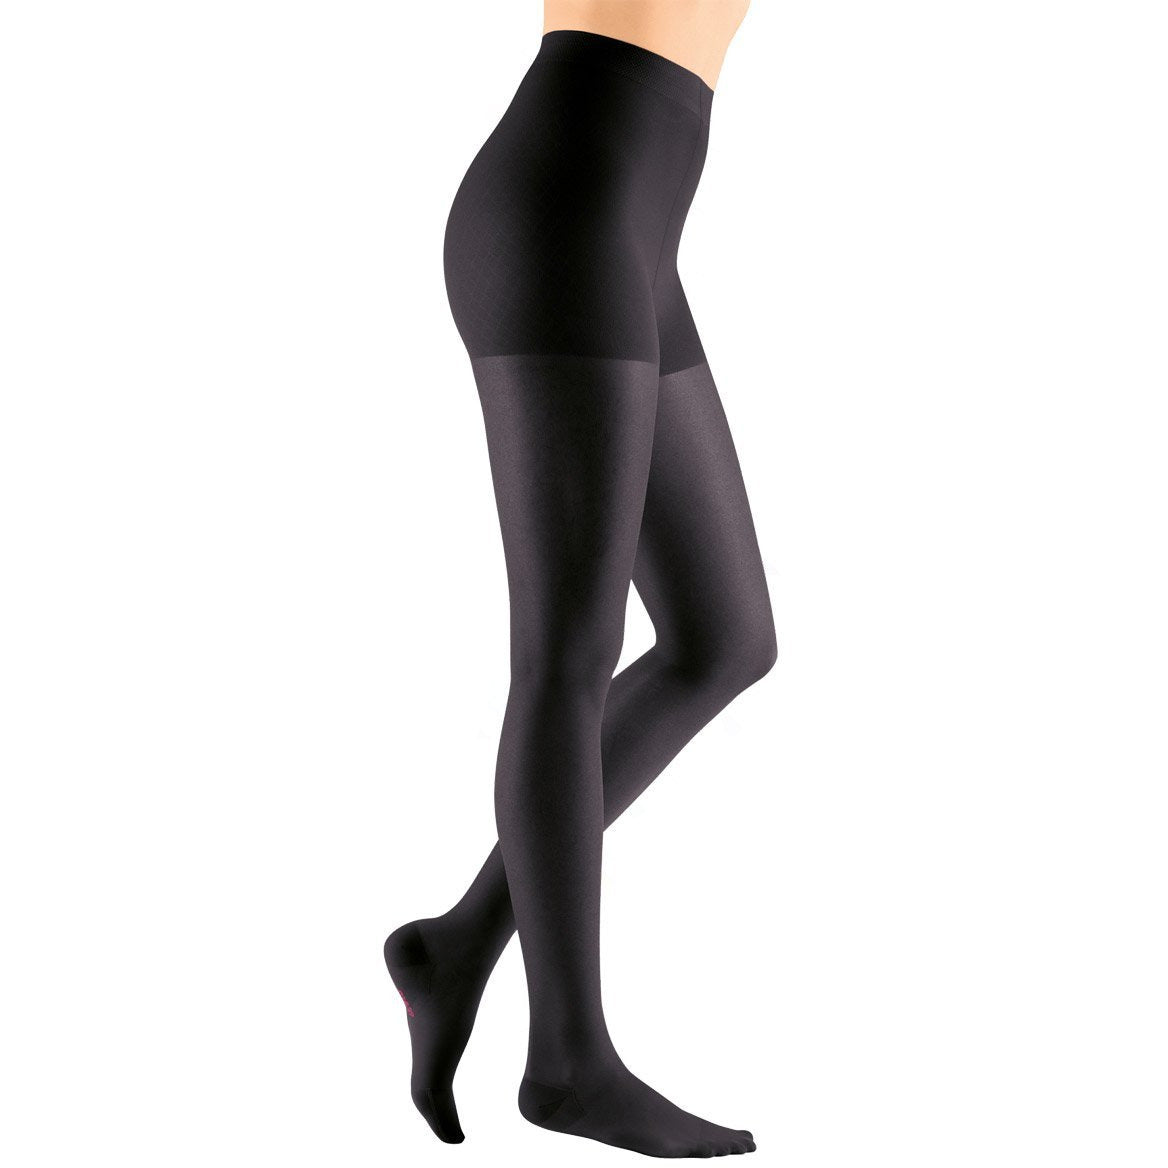 b8cd6715a6 Mediven Soft and Sheer Mild Support Pantyhose 8-15mmHg — BrightLife Direct